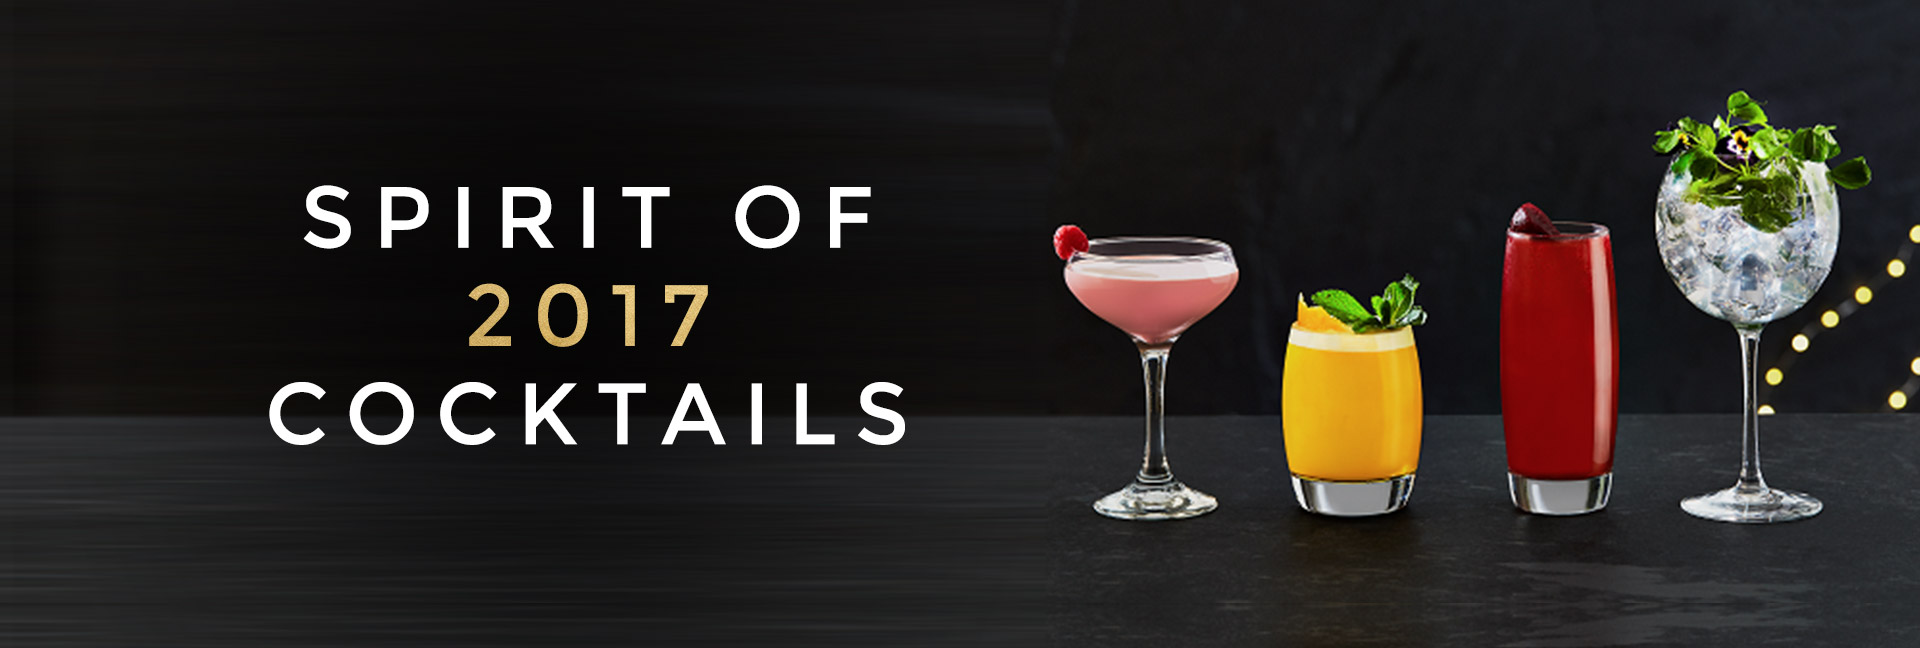 Spirit of 2017 cocktails at All Bar One Canary Wharf